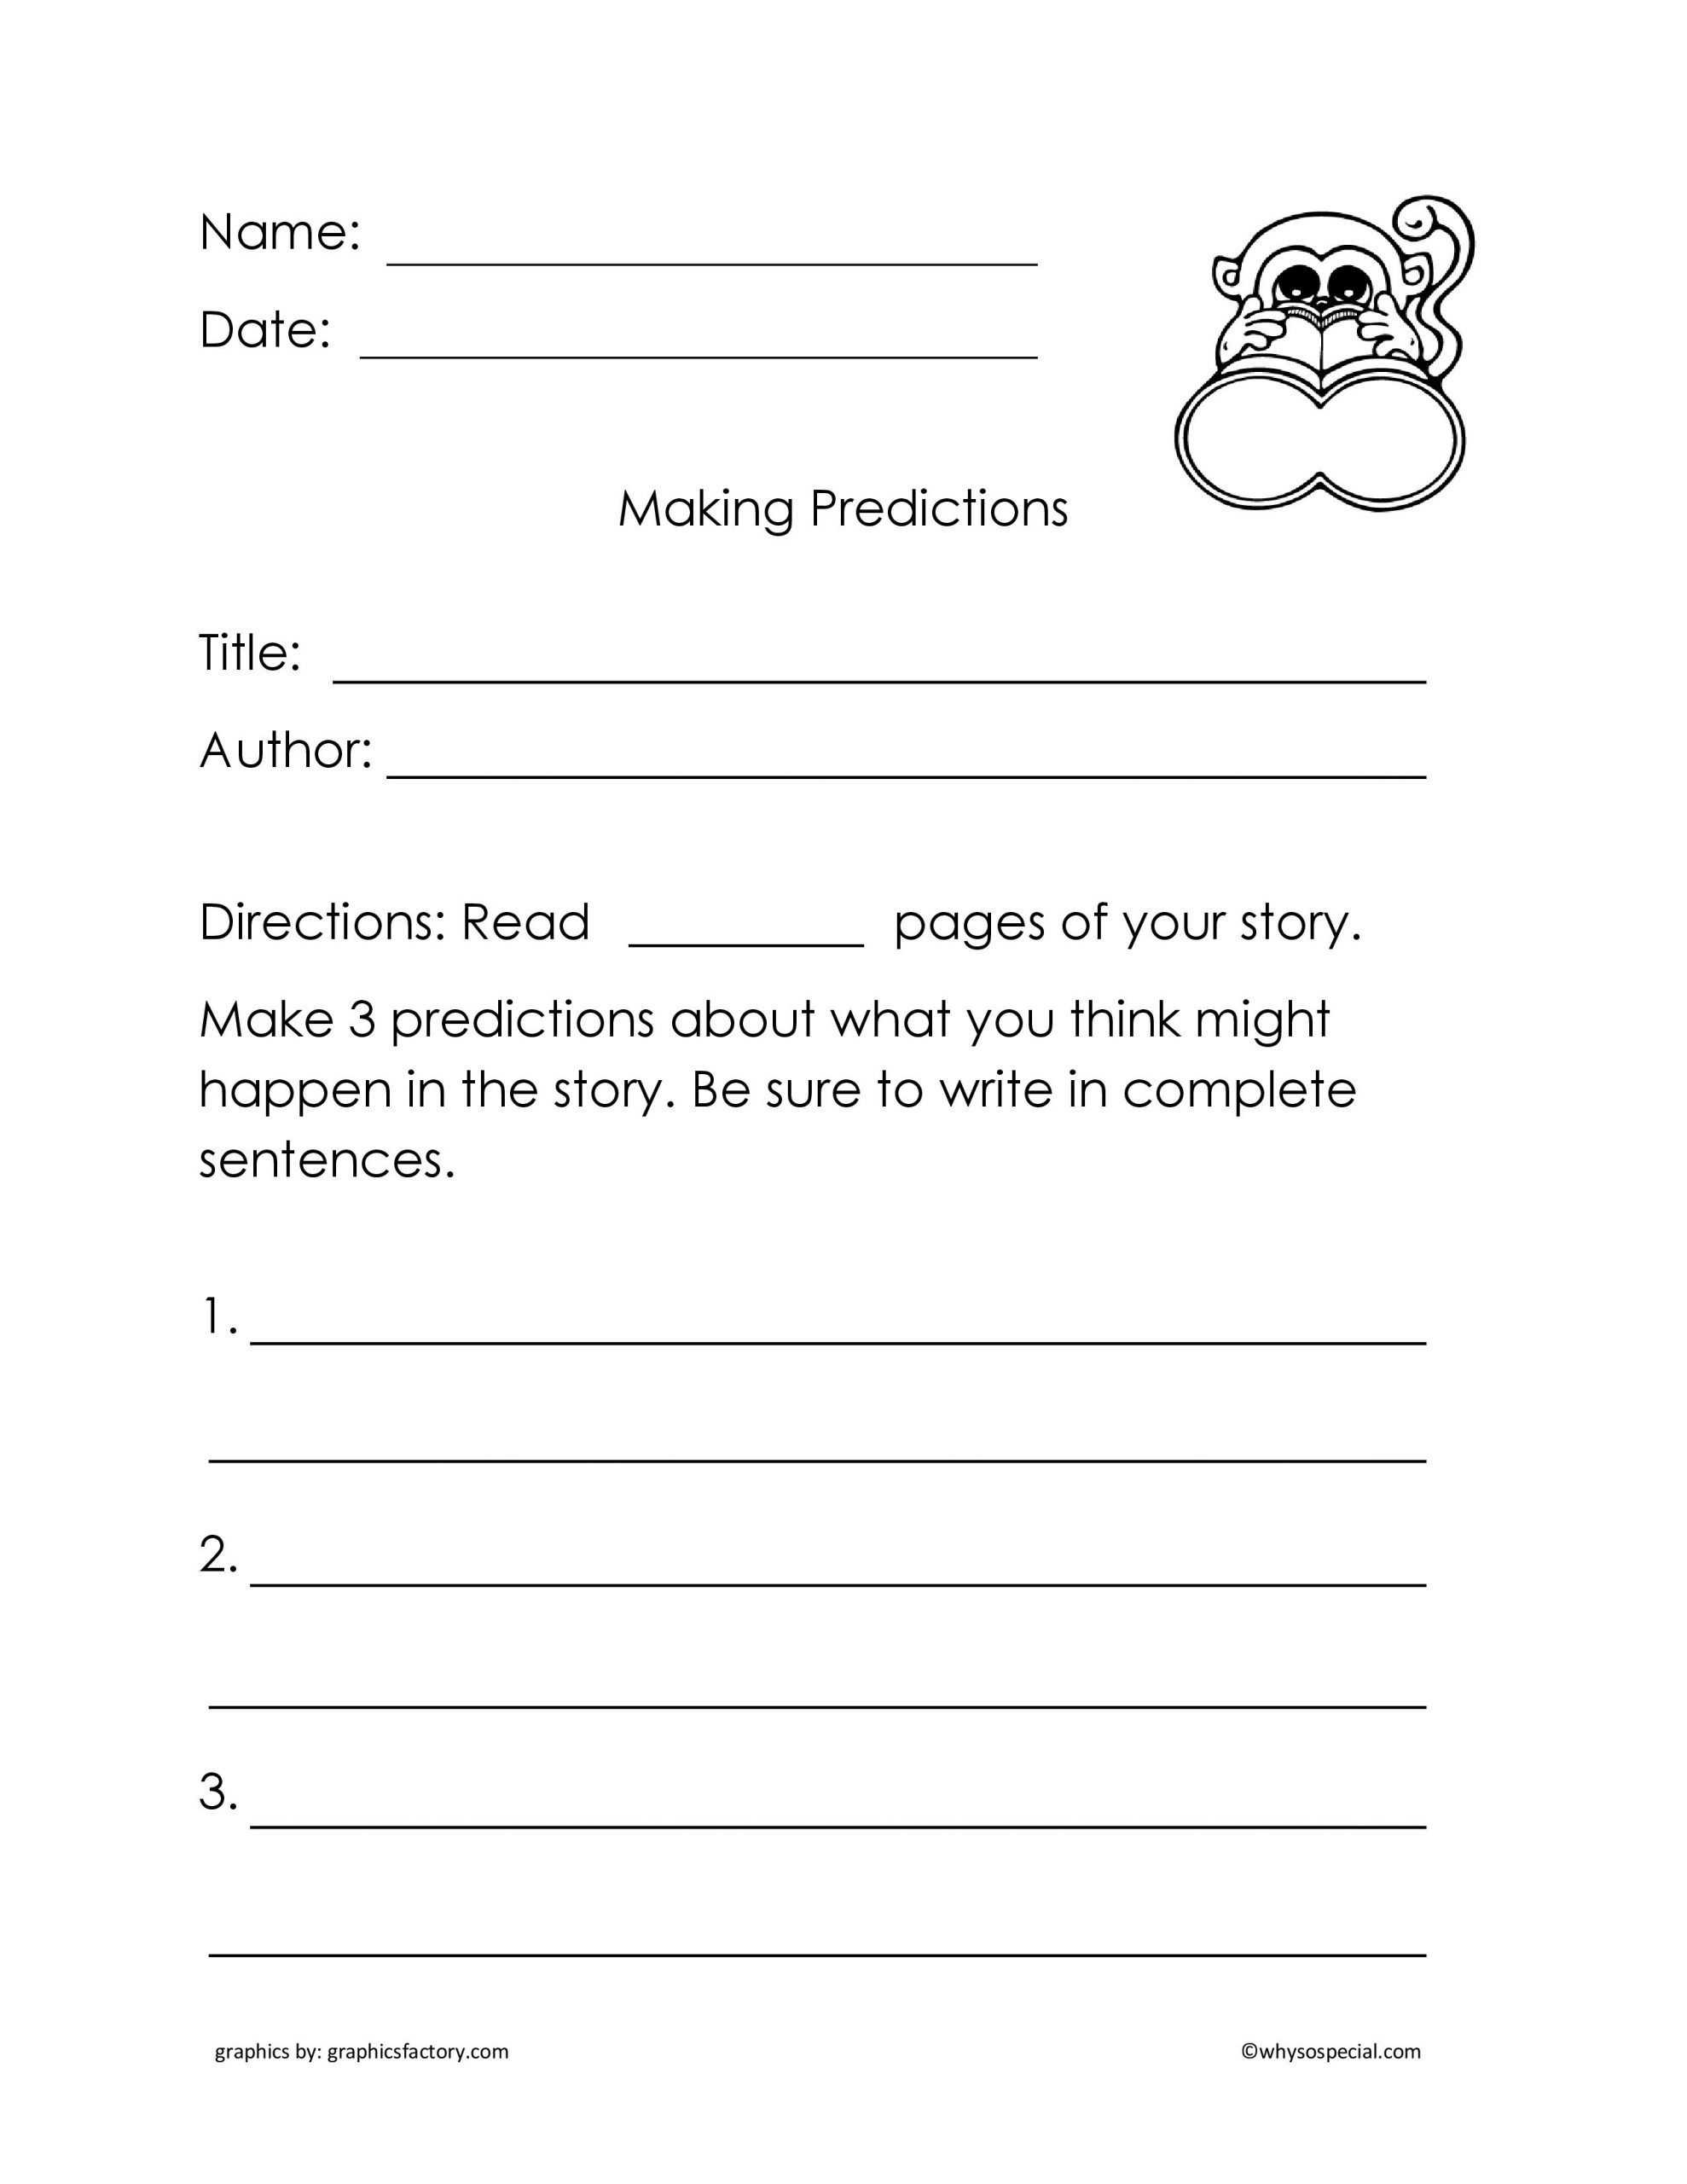 Making Predictions Worksheets 2nd Grade Making Predictions Weather Worksheet